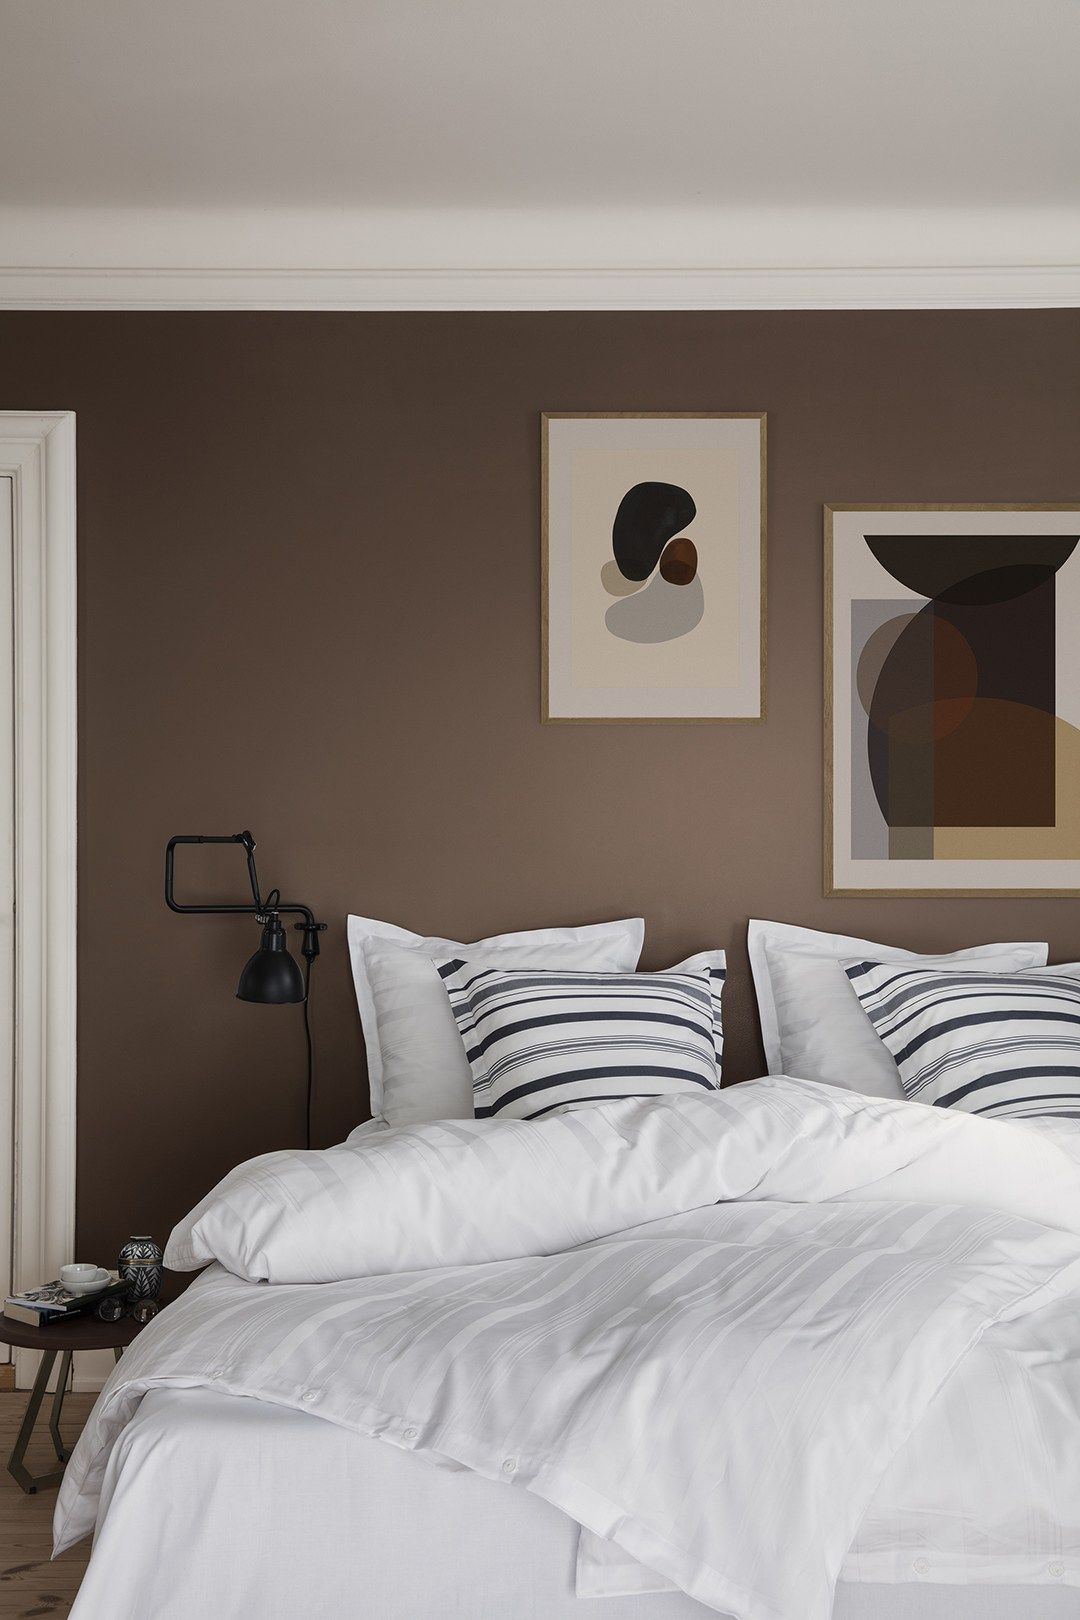 Simple striped bedding u2013 a collaboration between